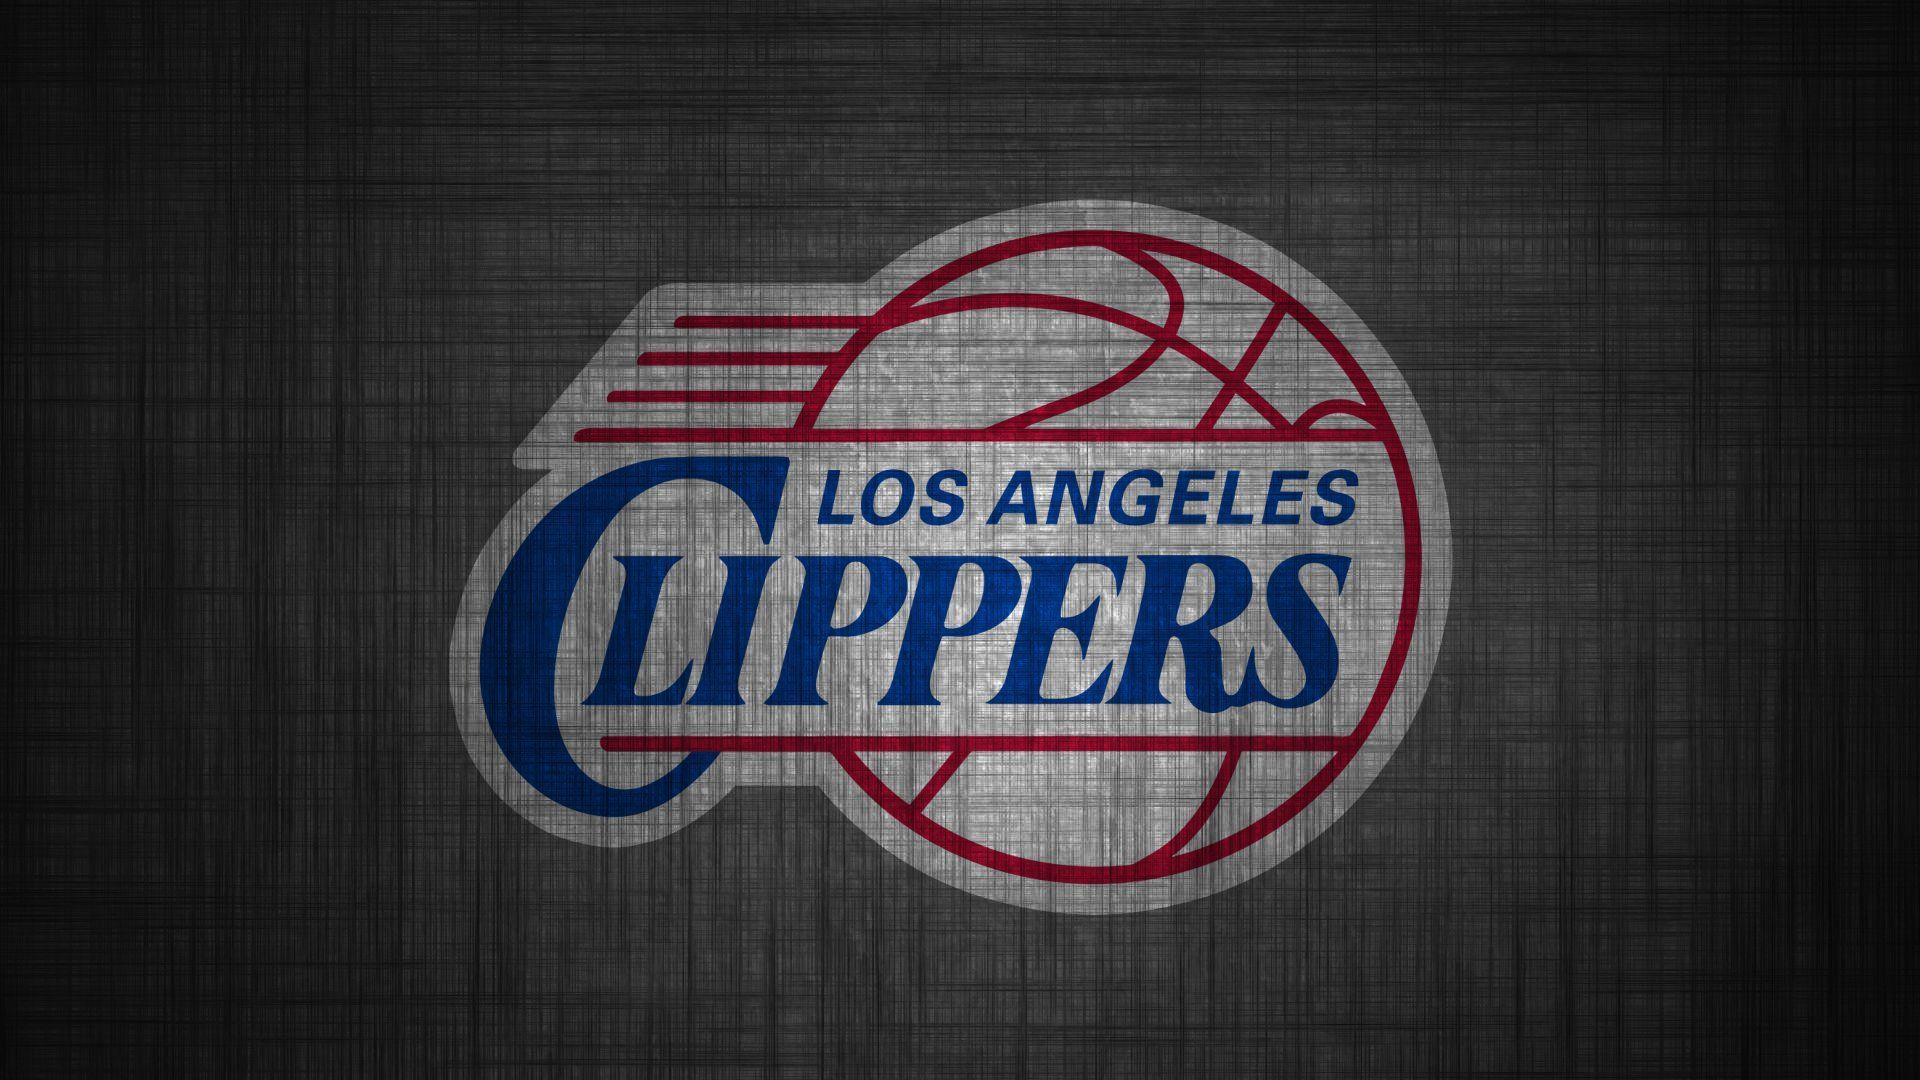 los angeles clippers wallpaper HD